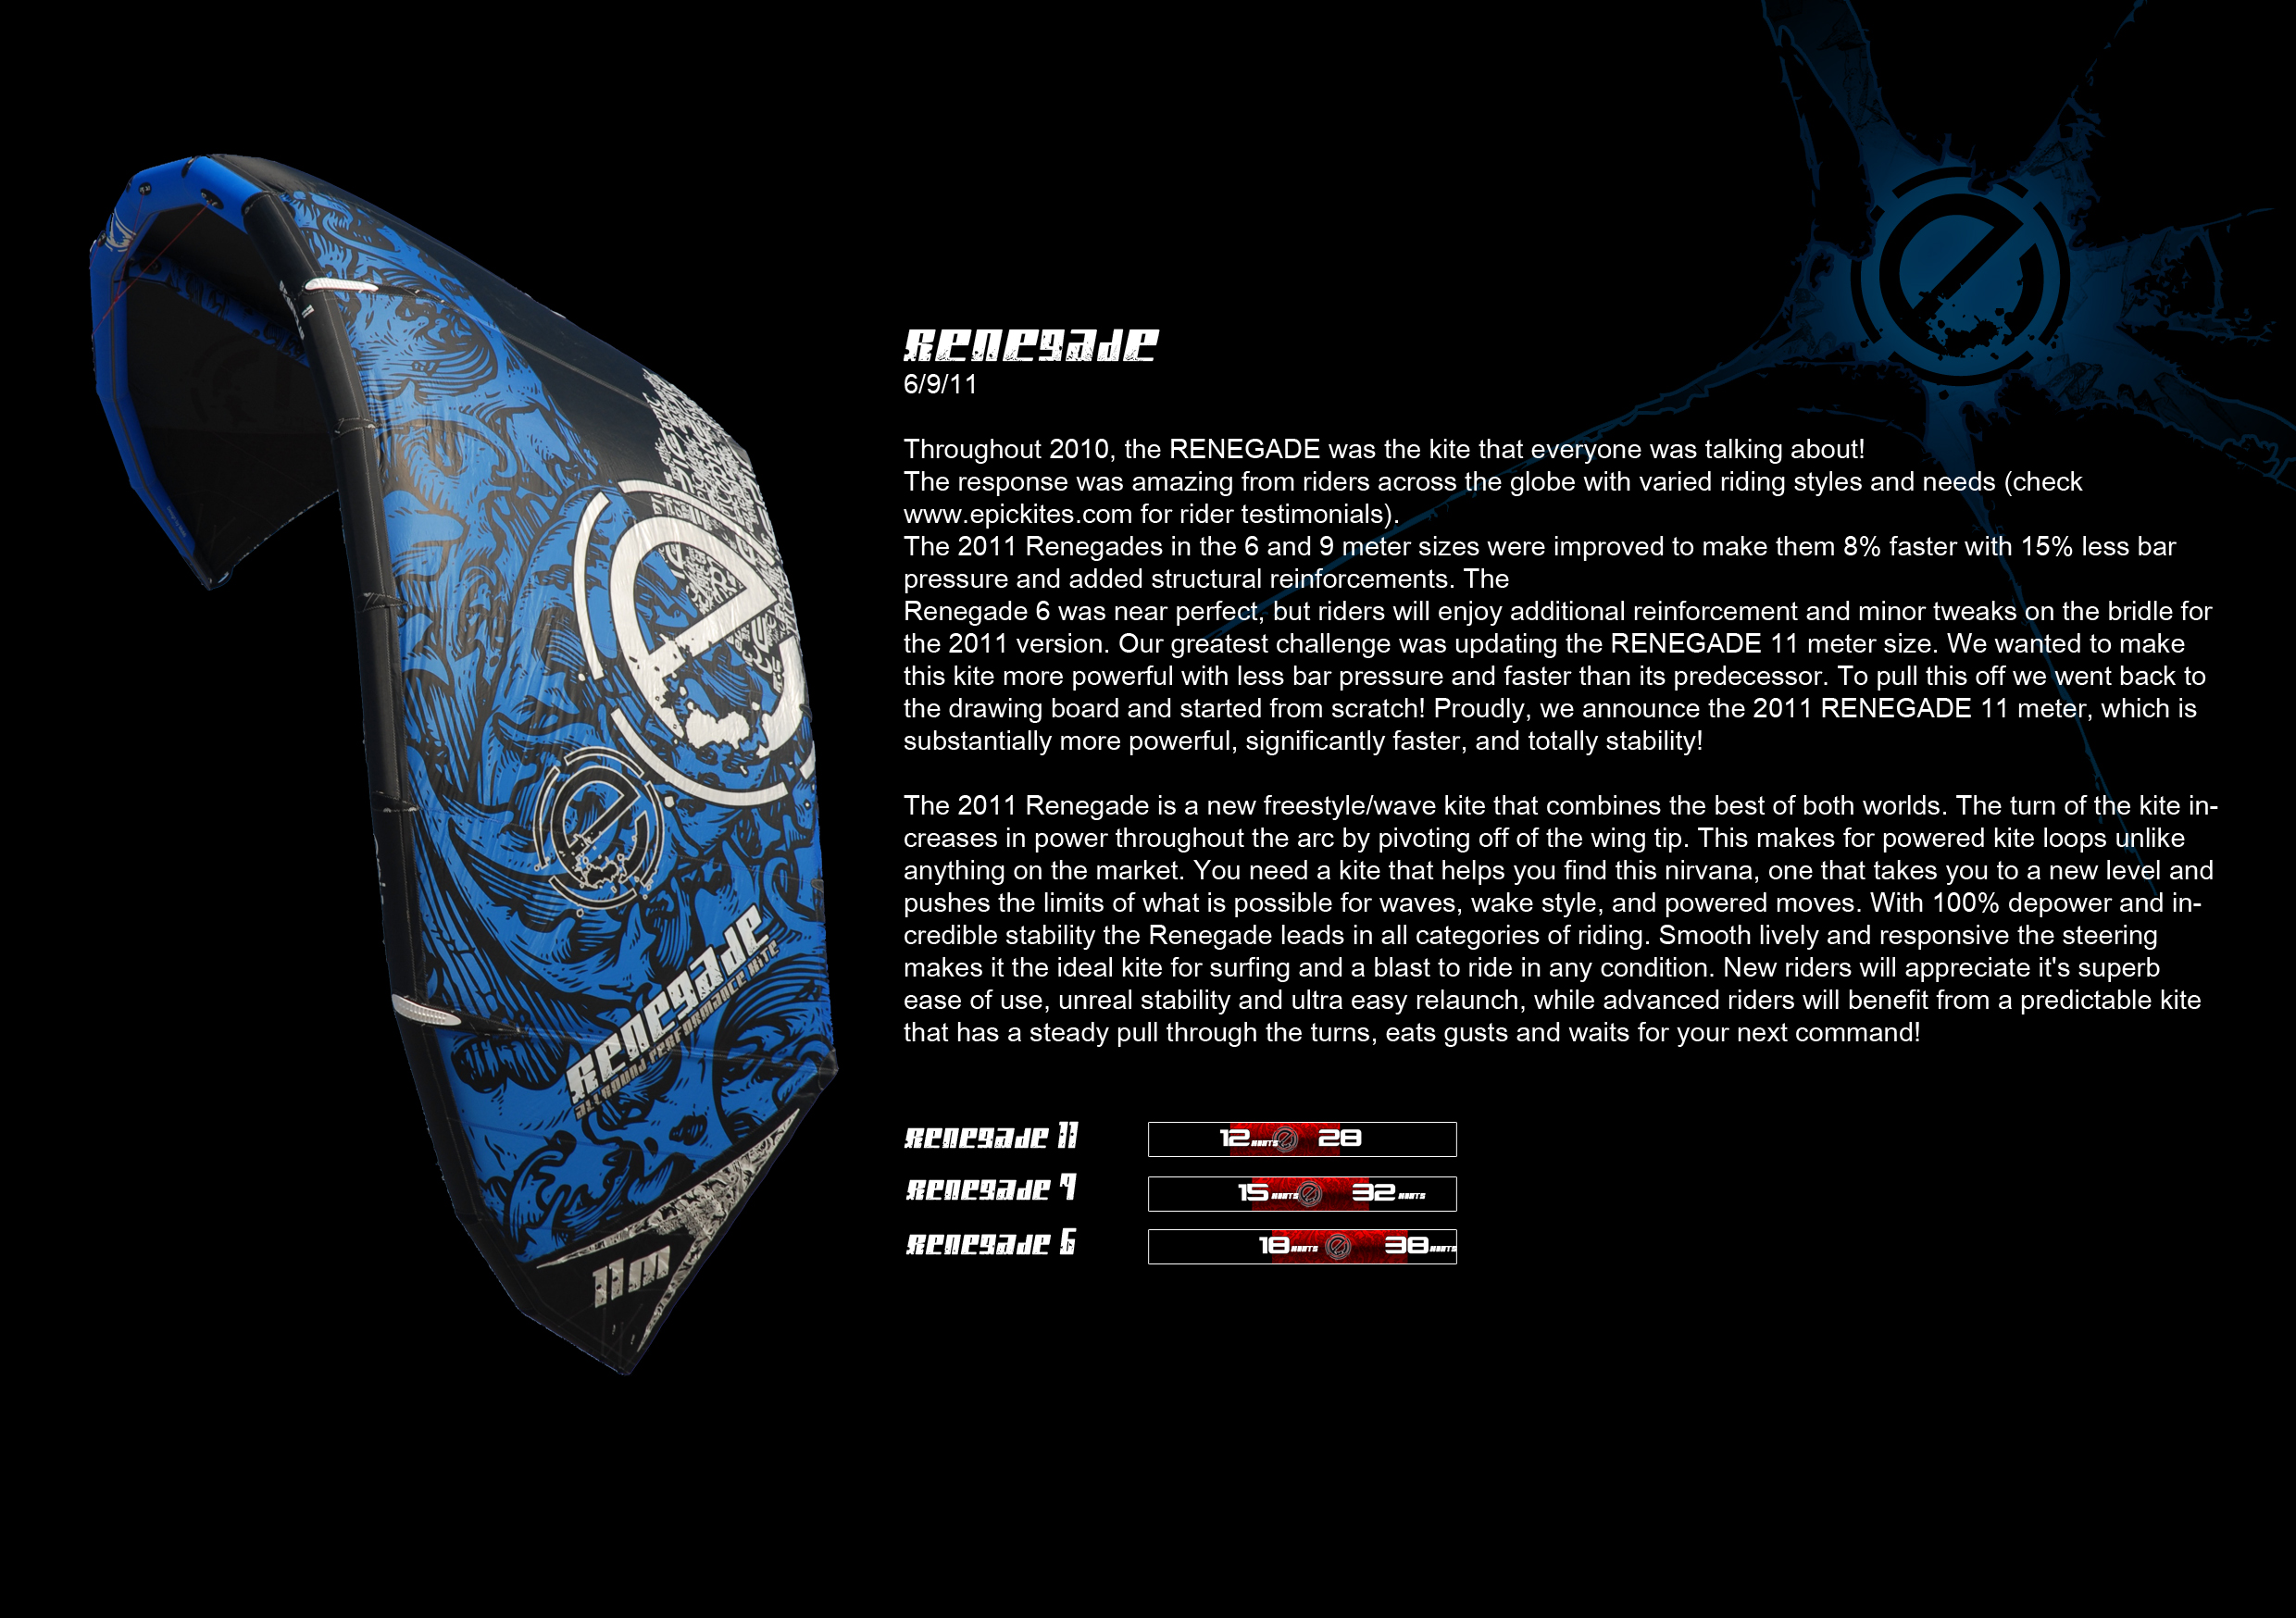 #3 Renegade page blue.jpg